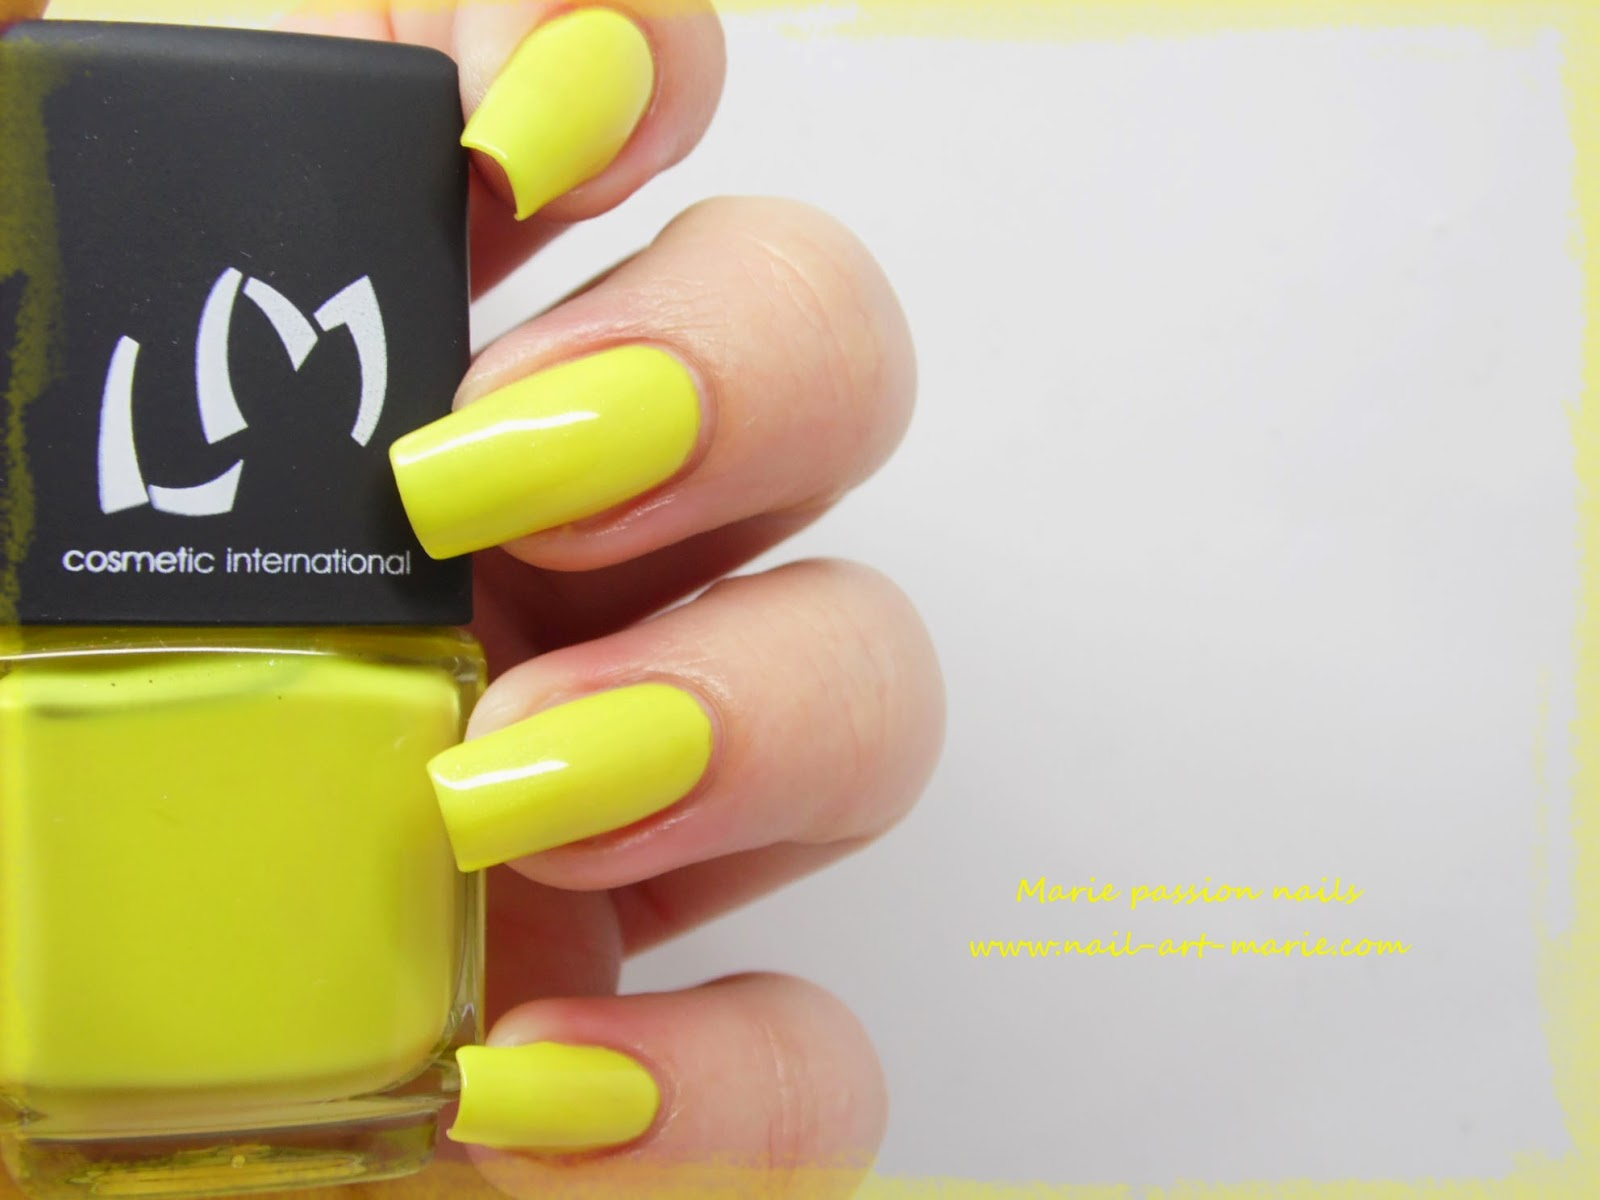 LM Cosmetic Castelao3